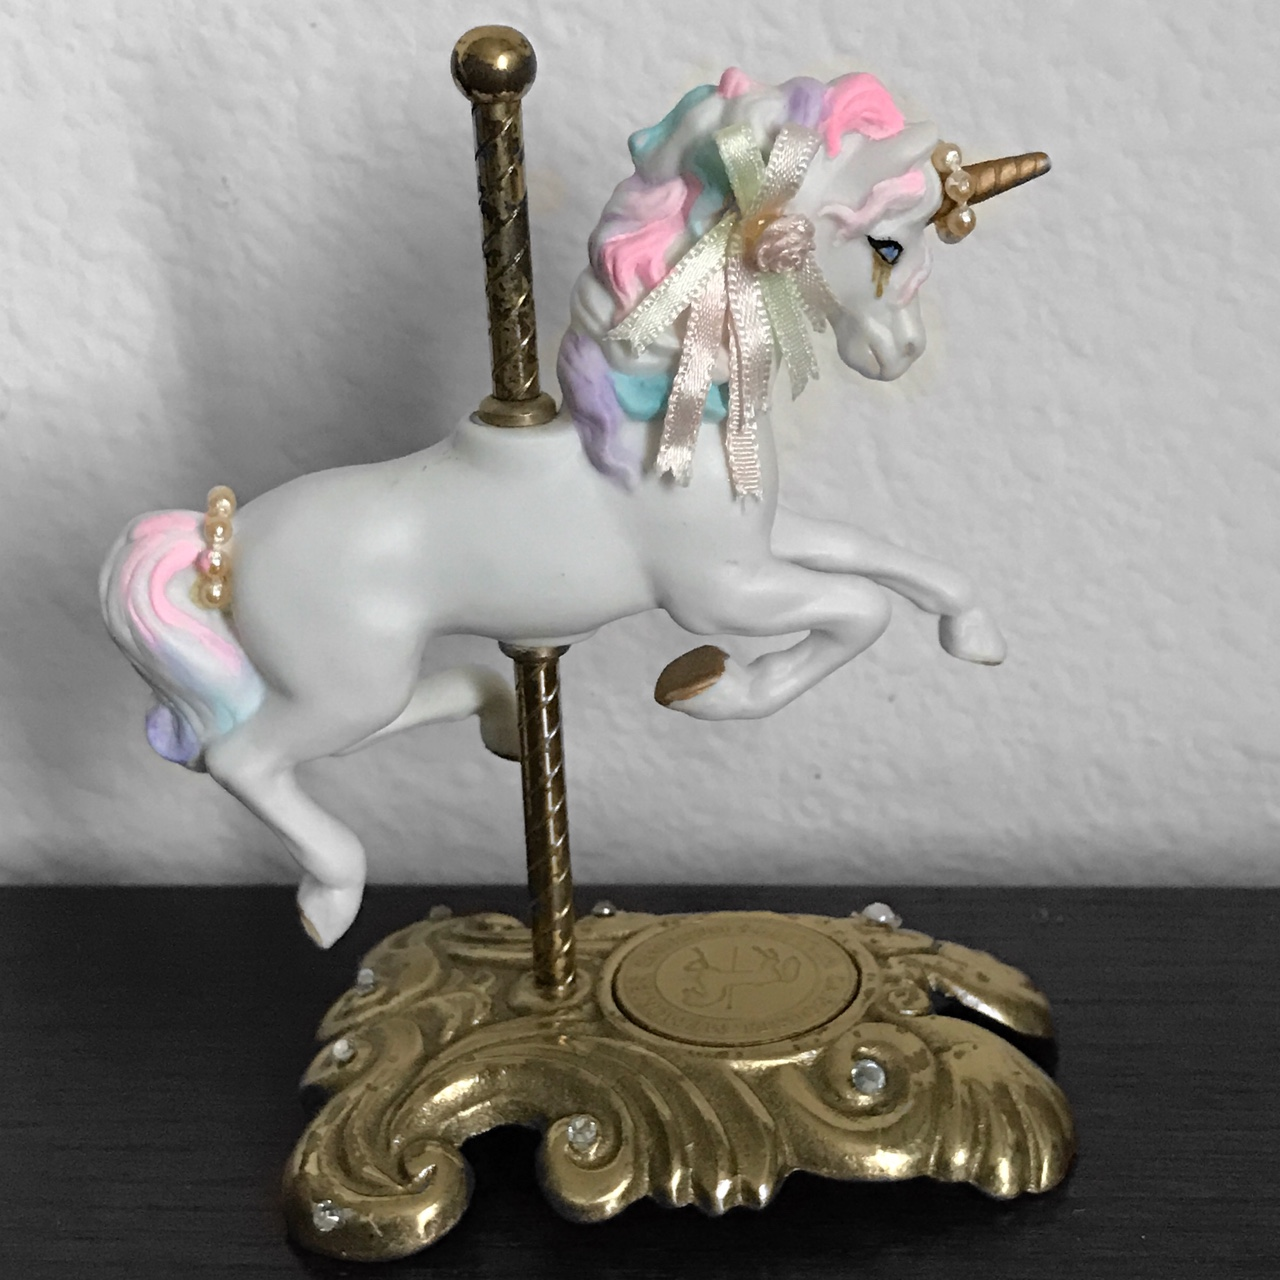 Aesthetic The Unicorn Is A Tumblr Unicorn Who Just Depop